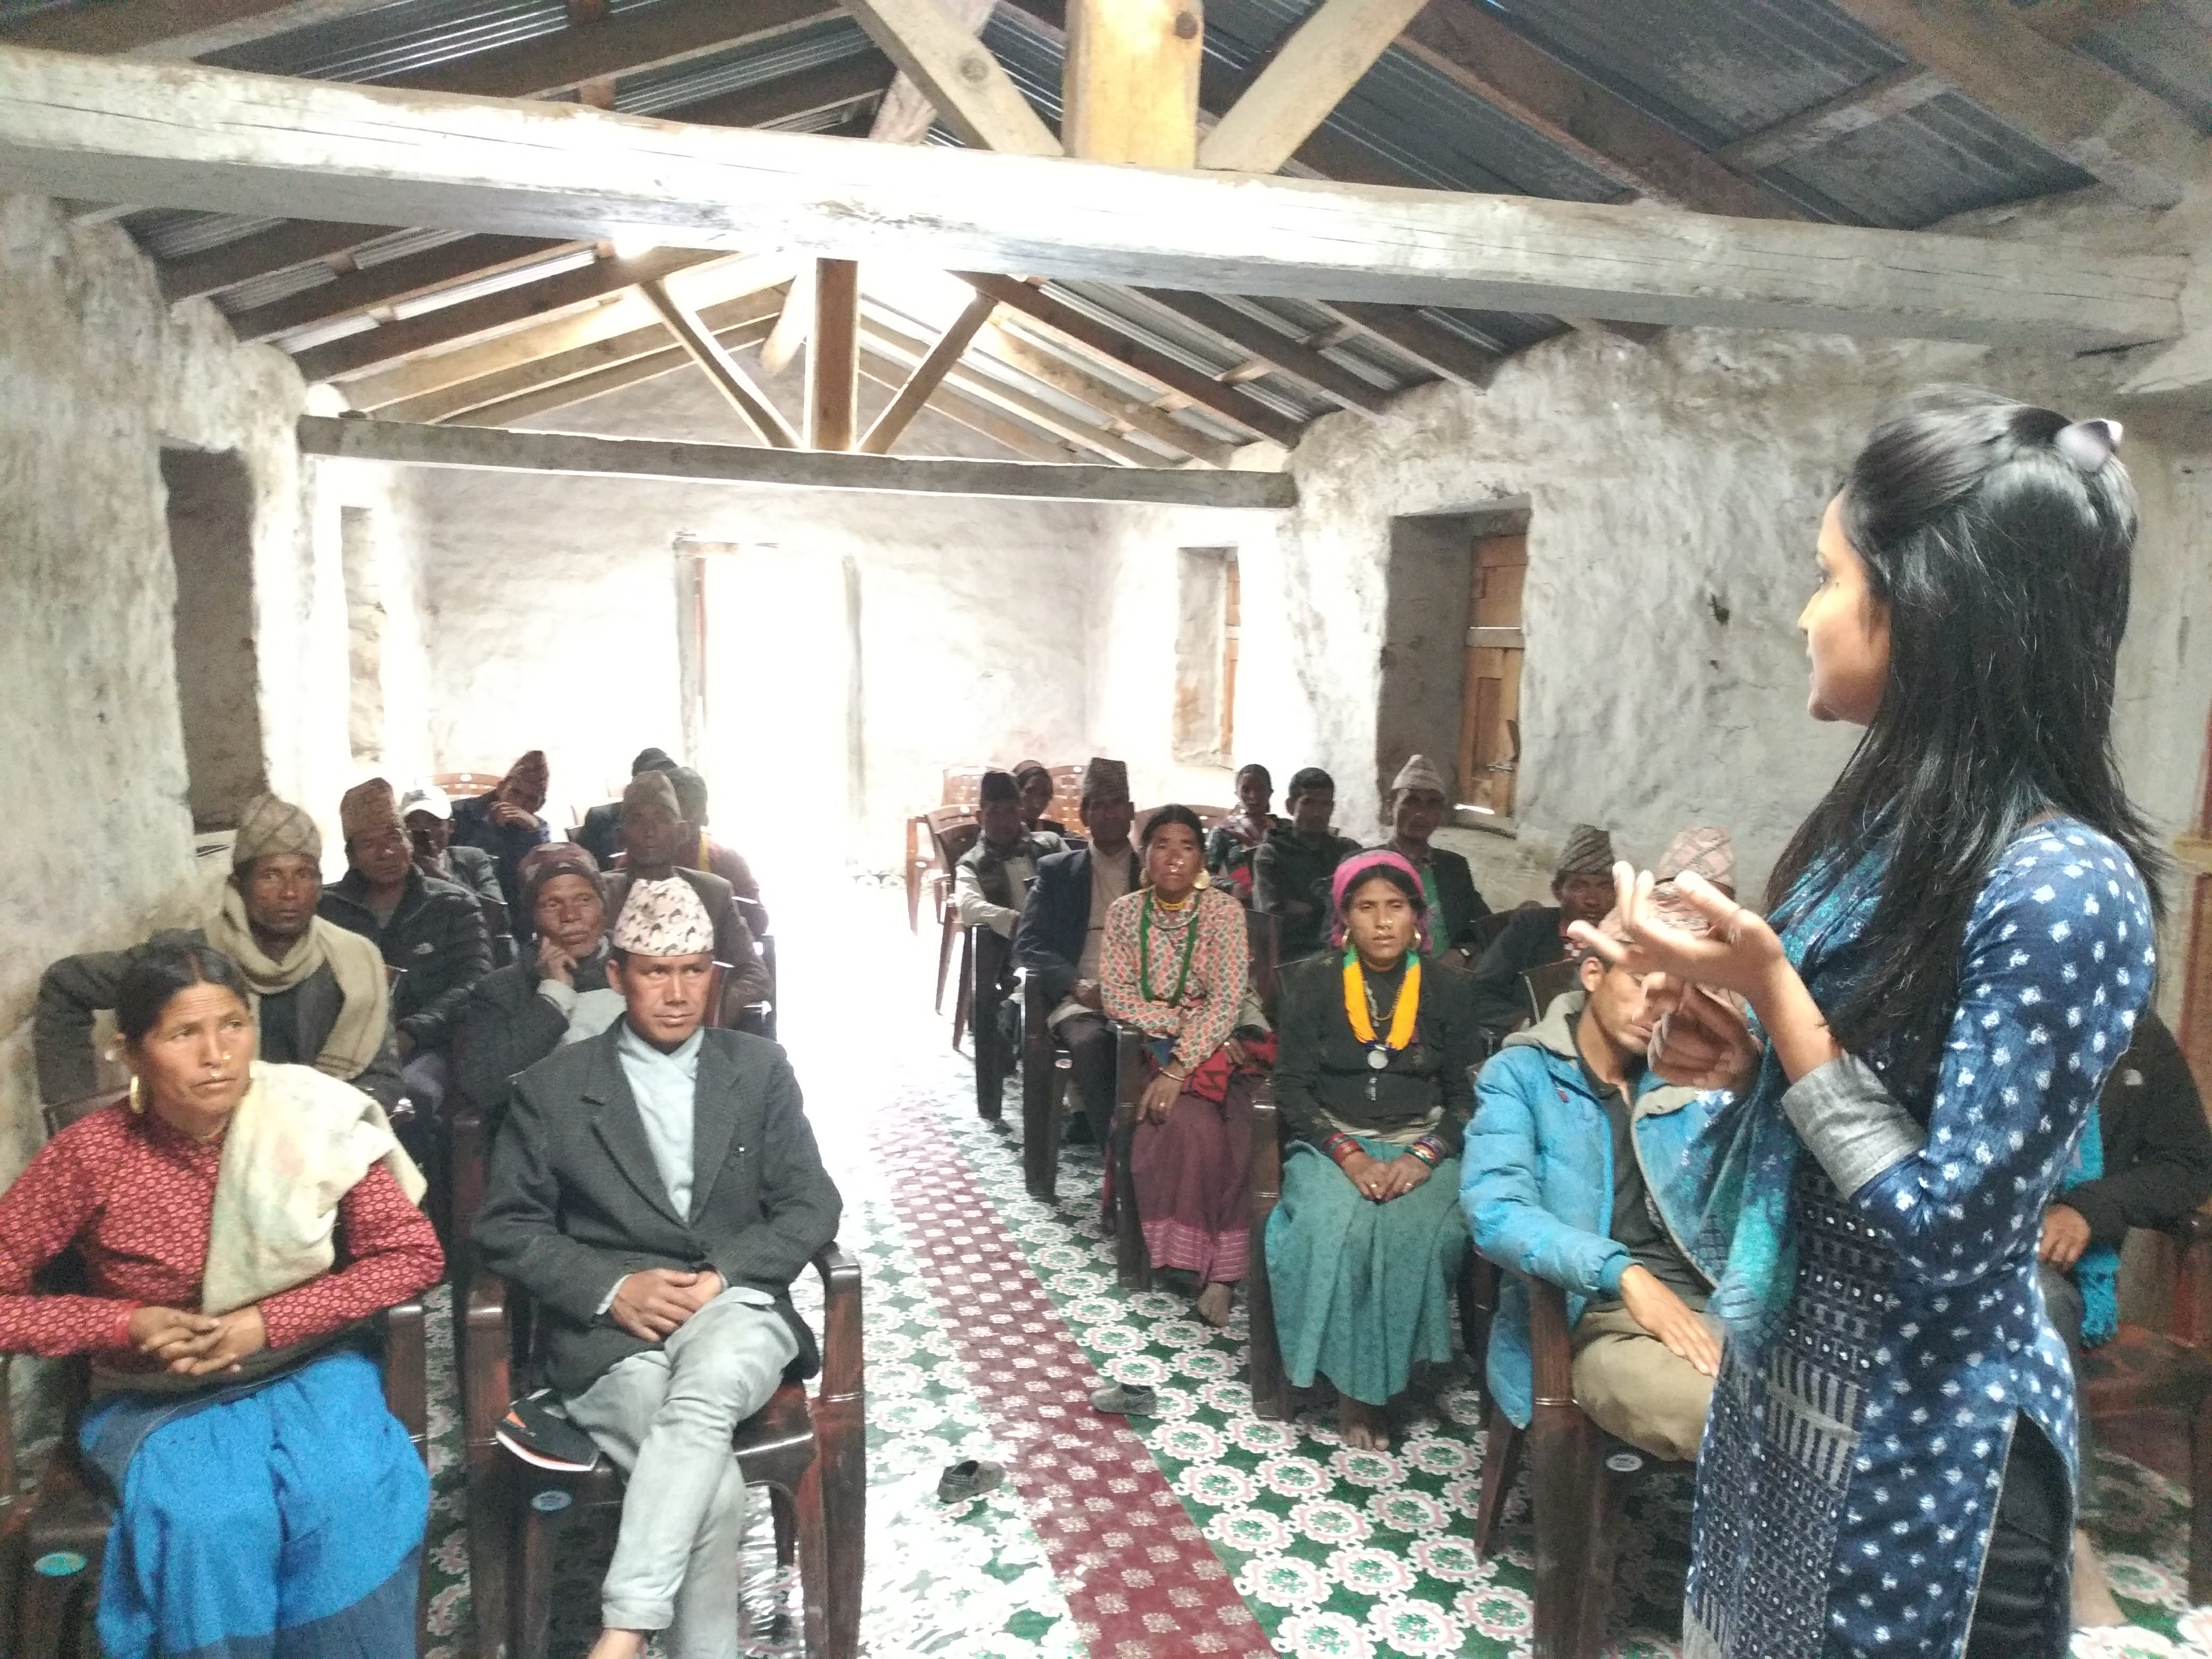 A mentor of International IDEA's Coherence programme explaining the elected representatives of a Adanchuli Gaunpalika (rural municipality) of Nepal's Karnali Province about the importance of their Gaunpalika's strategic vision in annual planning.  Photo credit: International IDEA